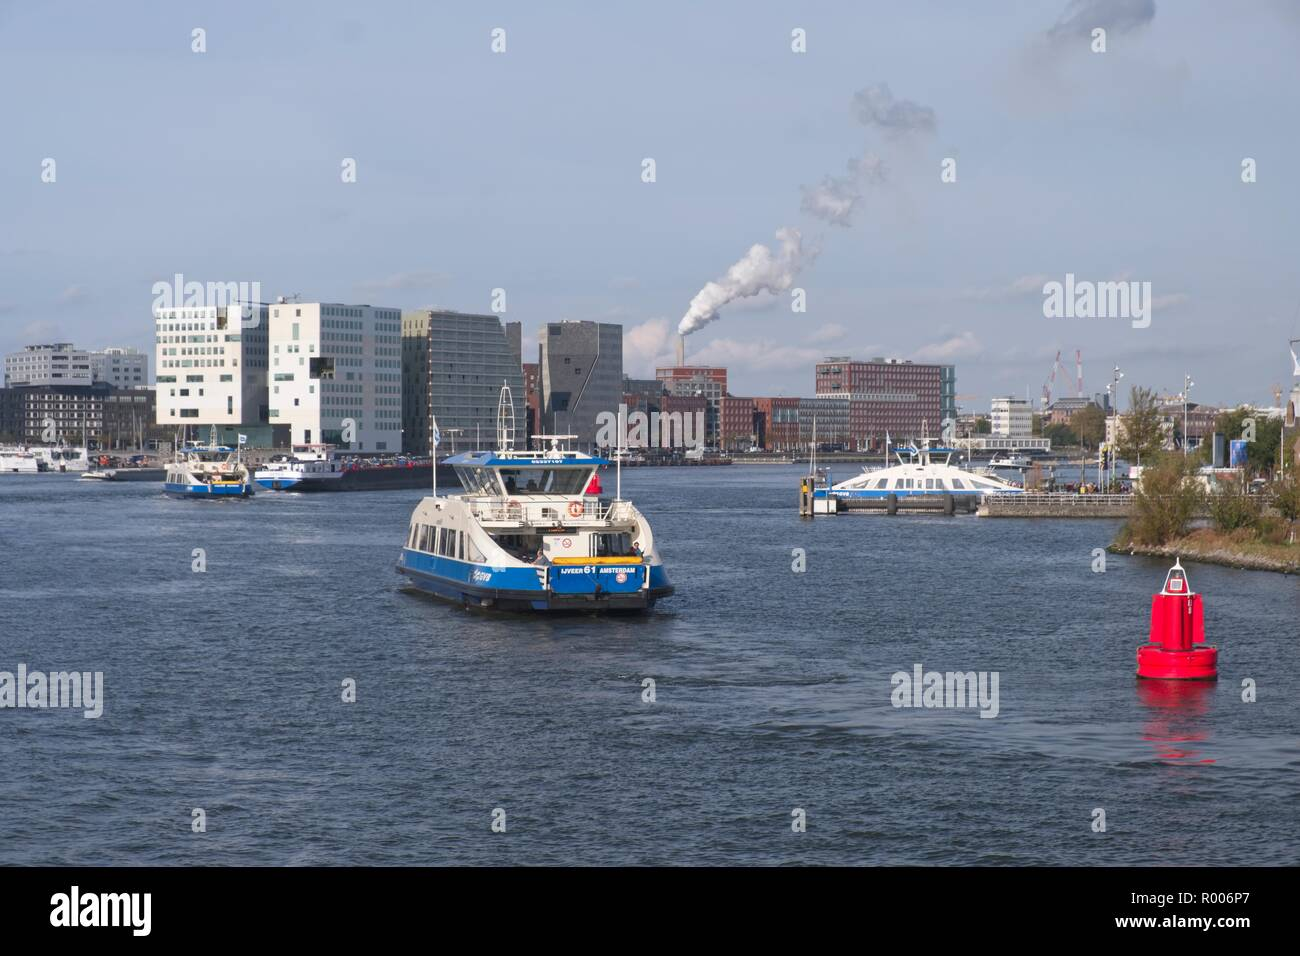 PASSENGER FERRY BETWEEN THE NORTH AND SOUTH BANKS OF THE IJ AMSTERDAM THE NETHERLANDS - Stock Image